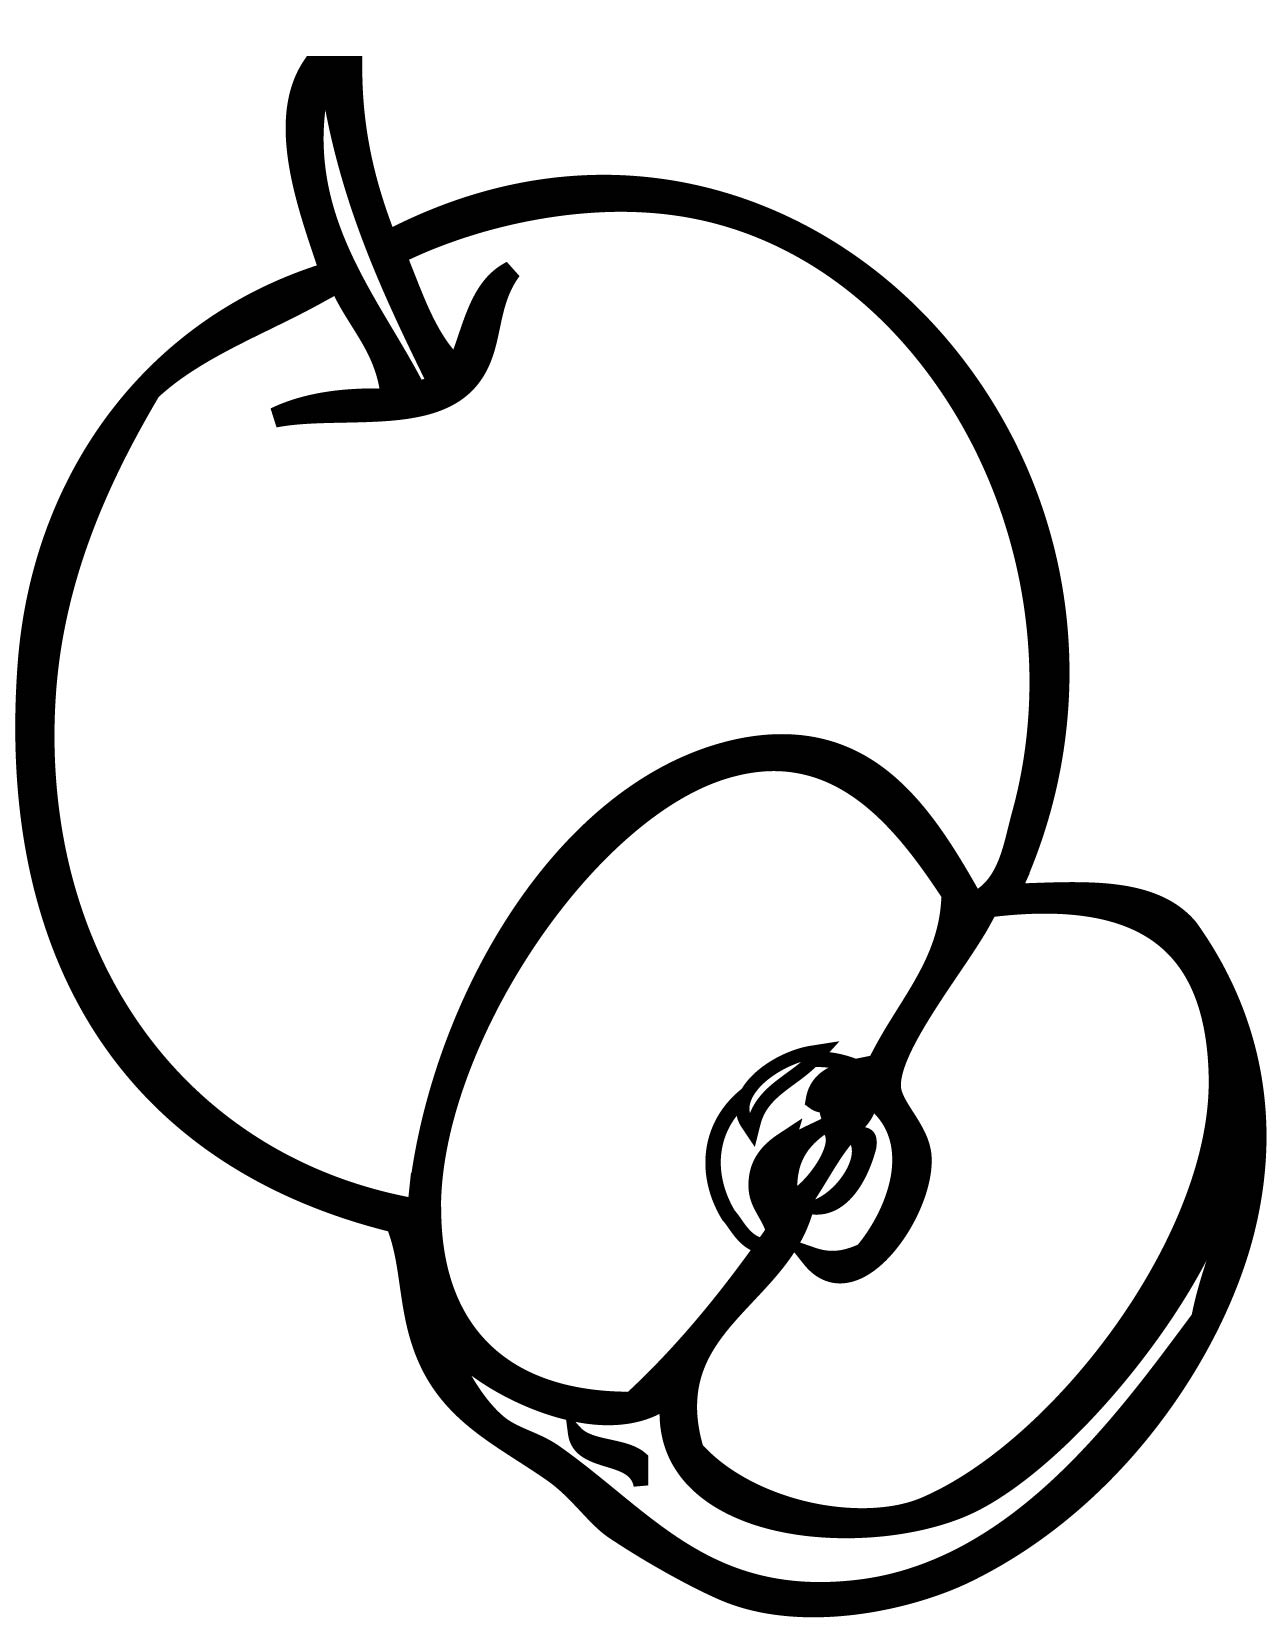 apple coloring pages for preschoolers - Apple Coloring